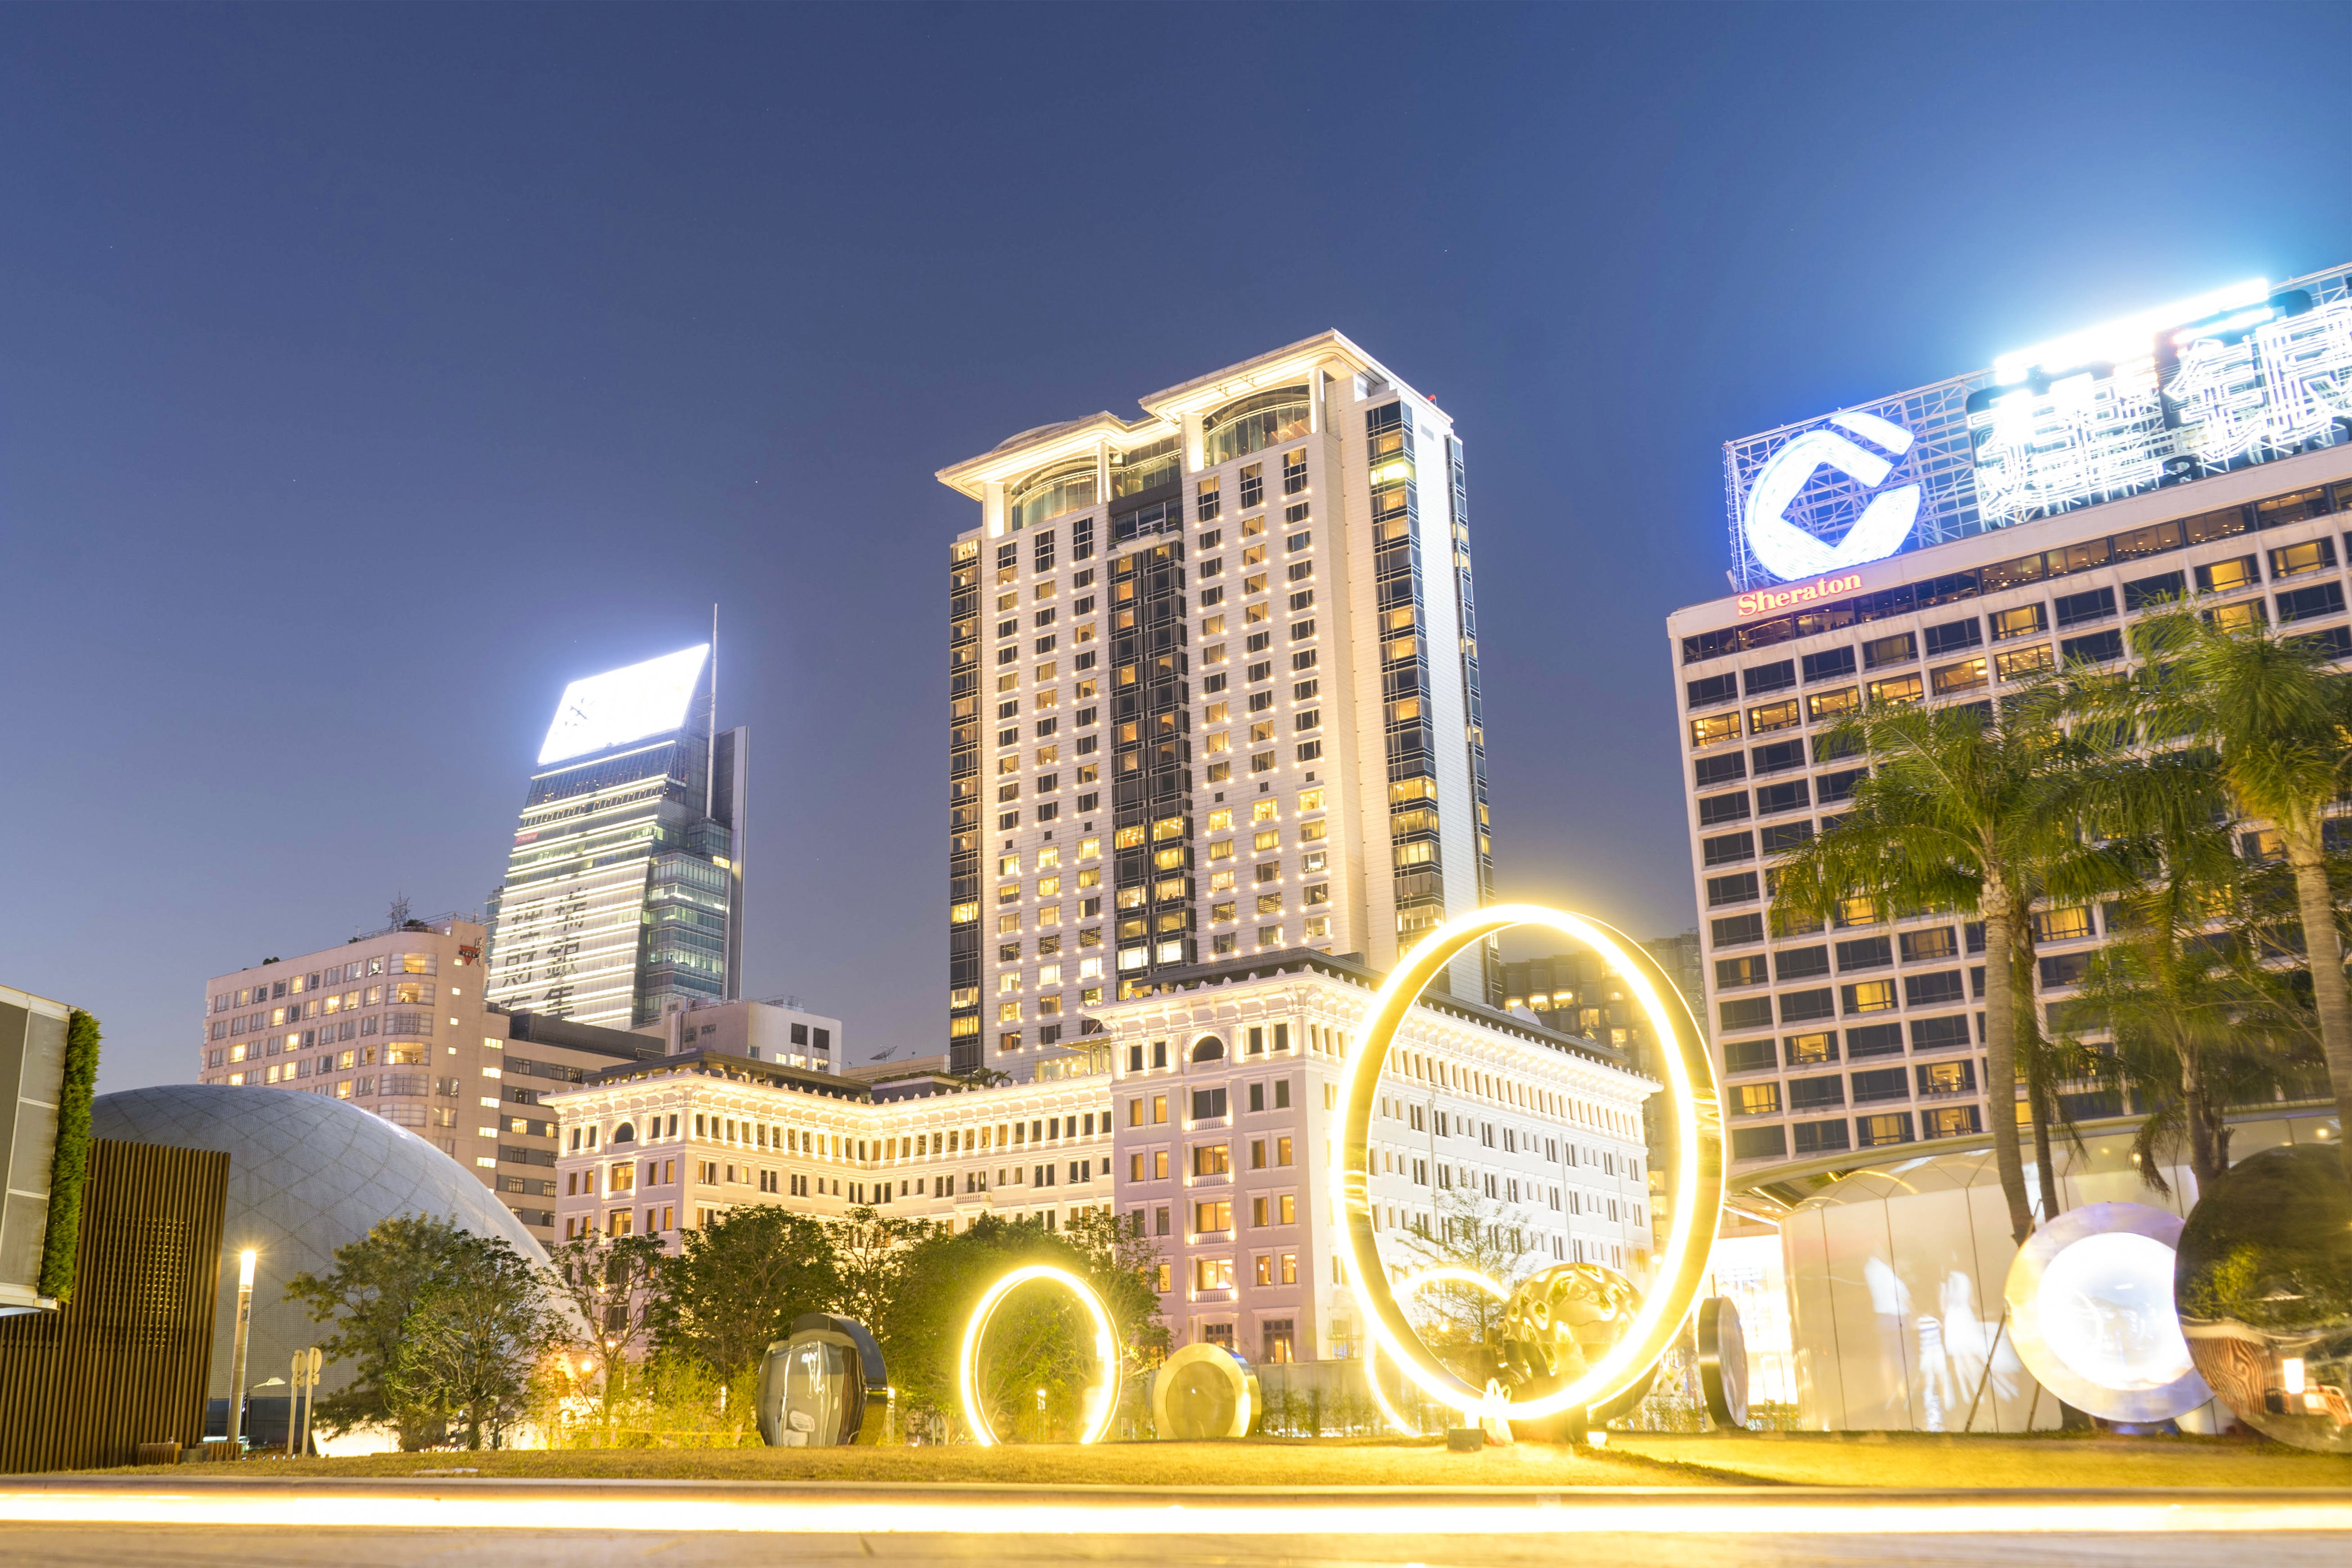 Several Lighted High-rise Buildings